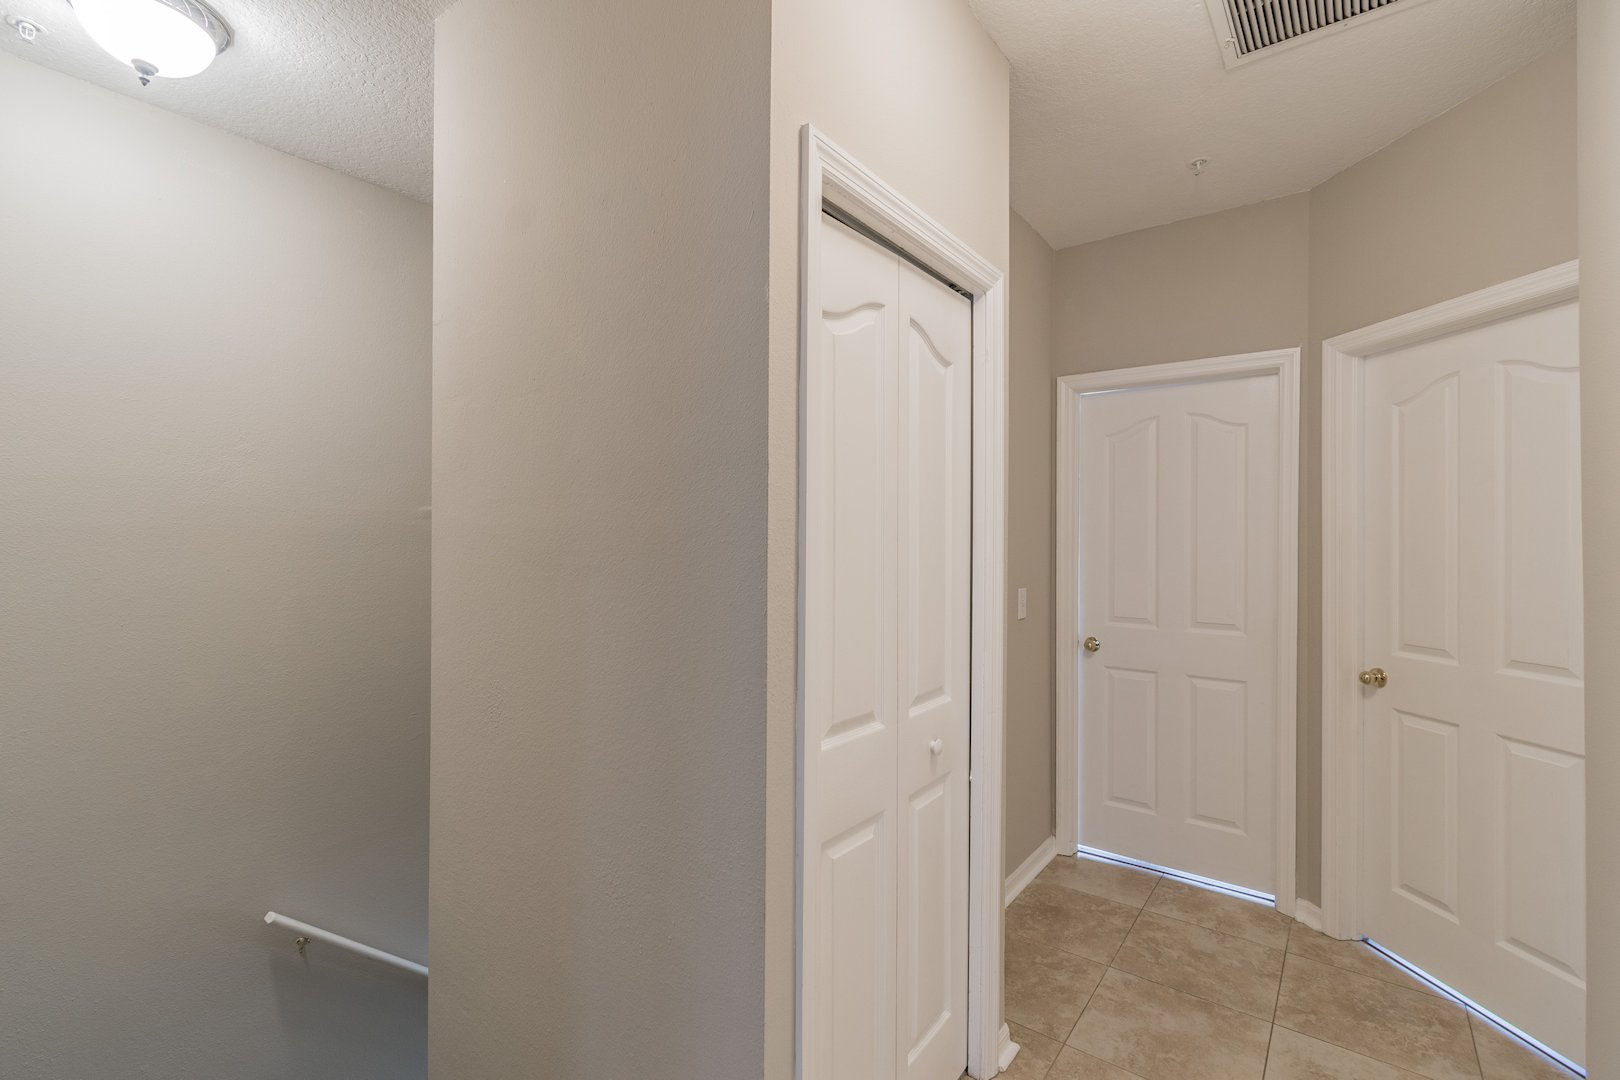 2929 bayshore Pointe Dr. Tampa Fl, Bayshore Pointe Townhomes (15)